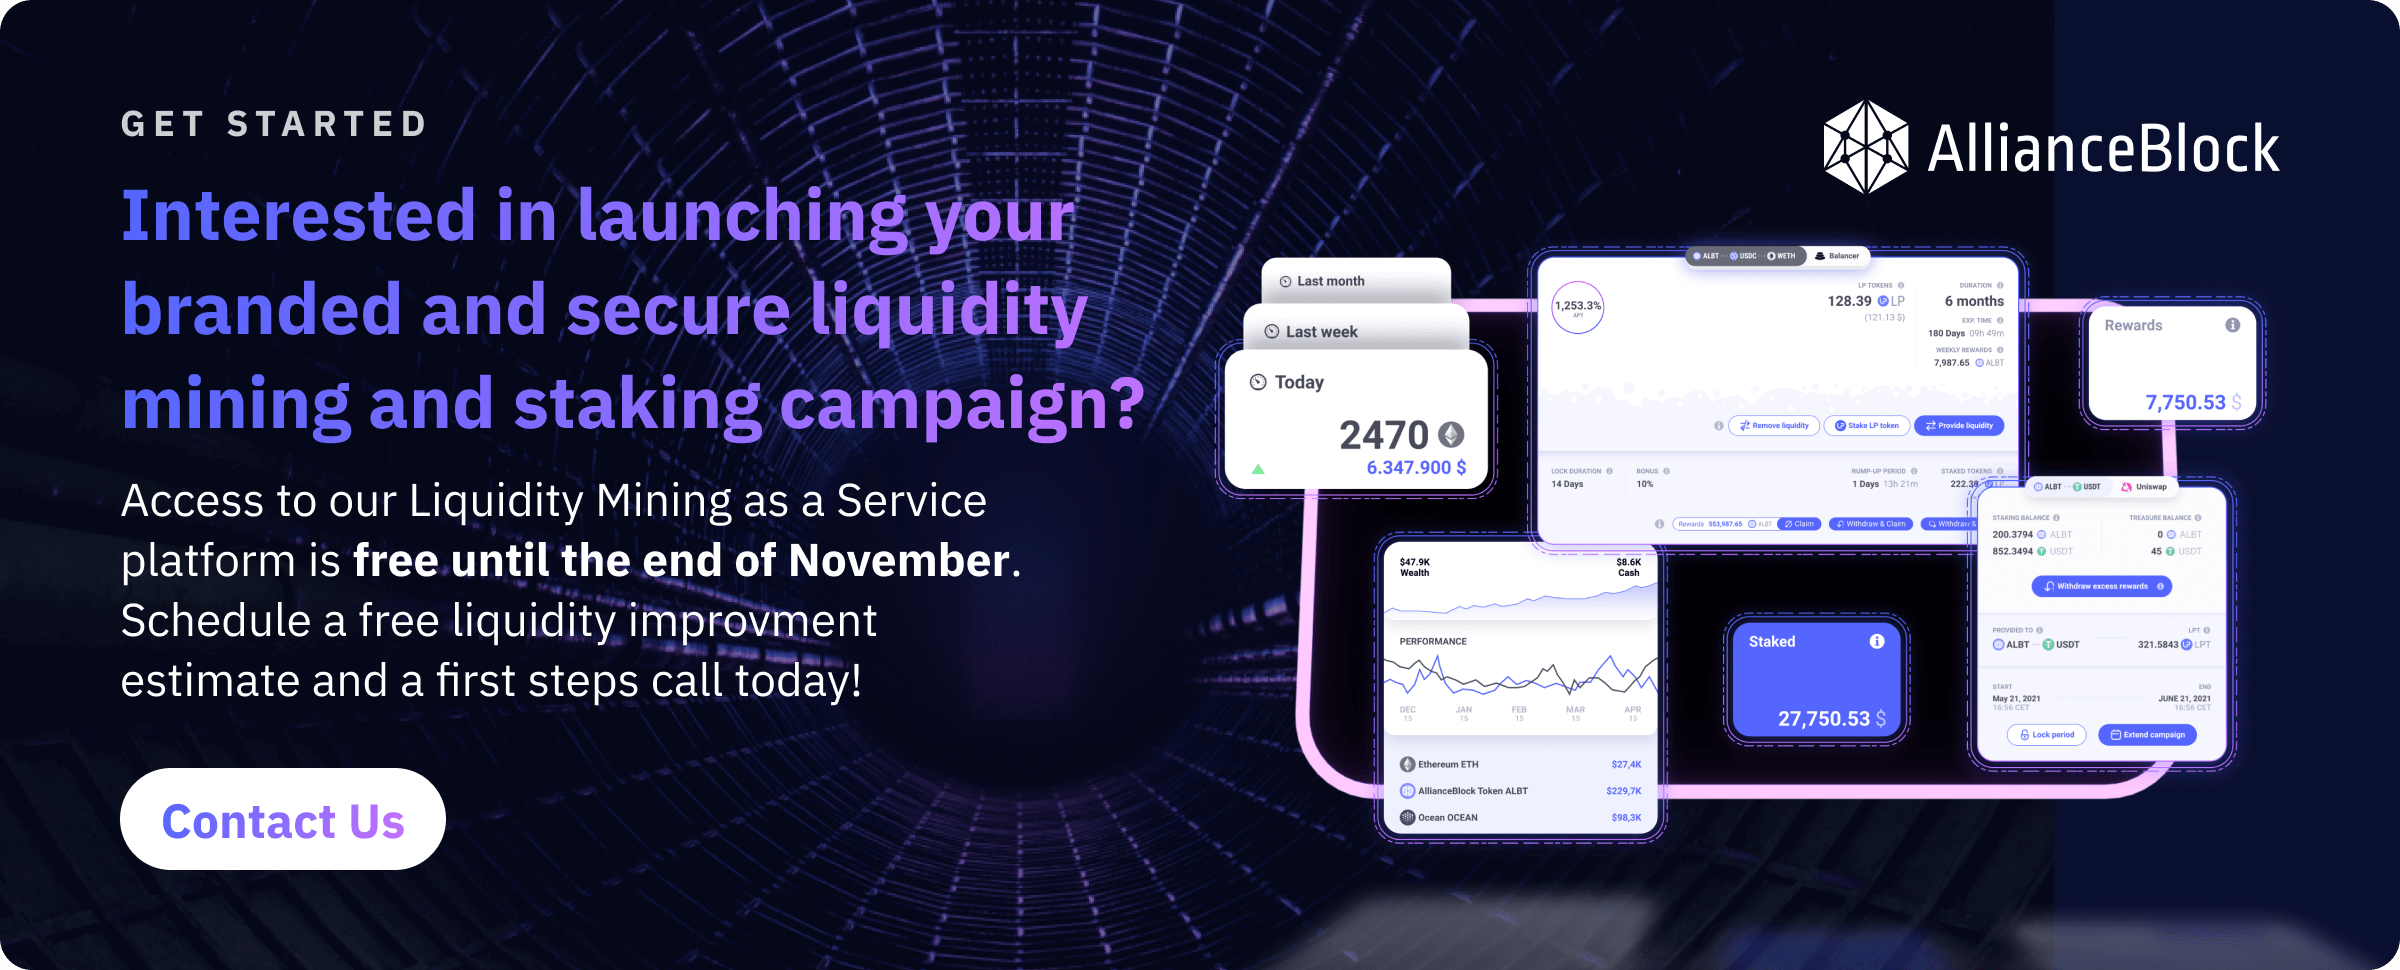 Get started with your own liquidity mining and staking campaigns